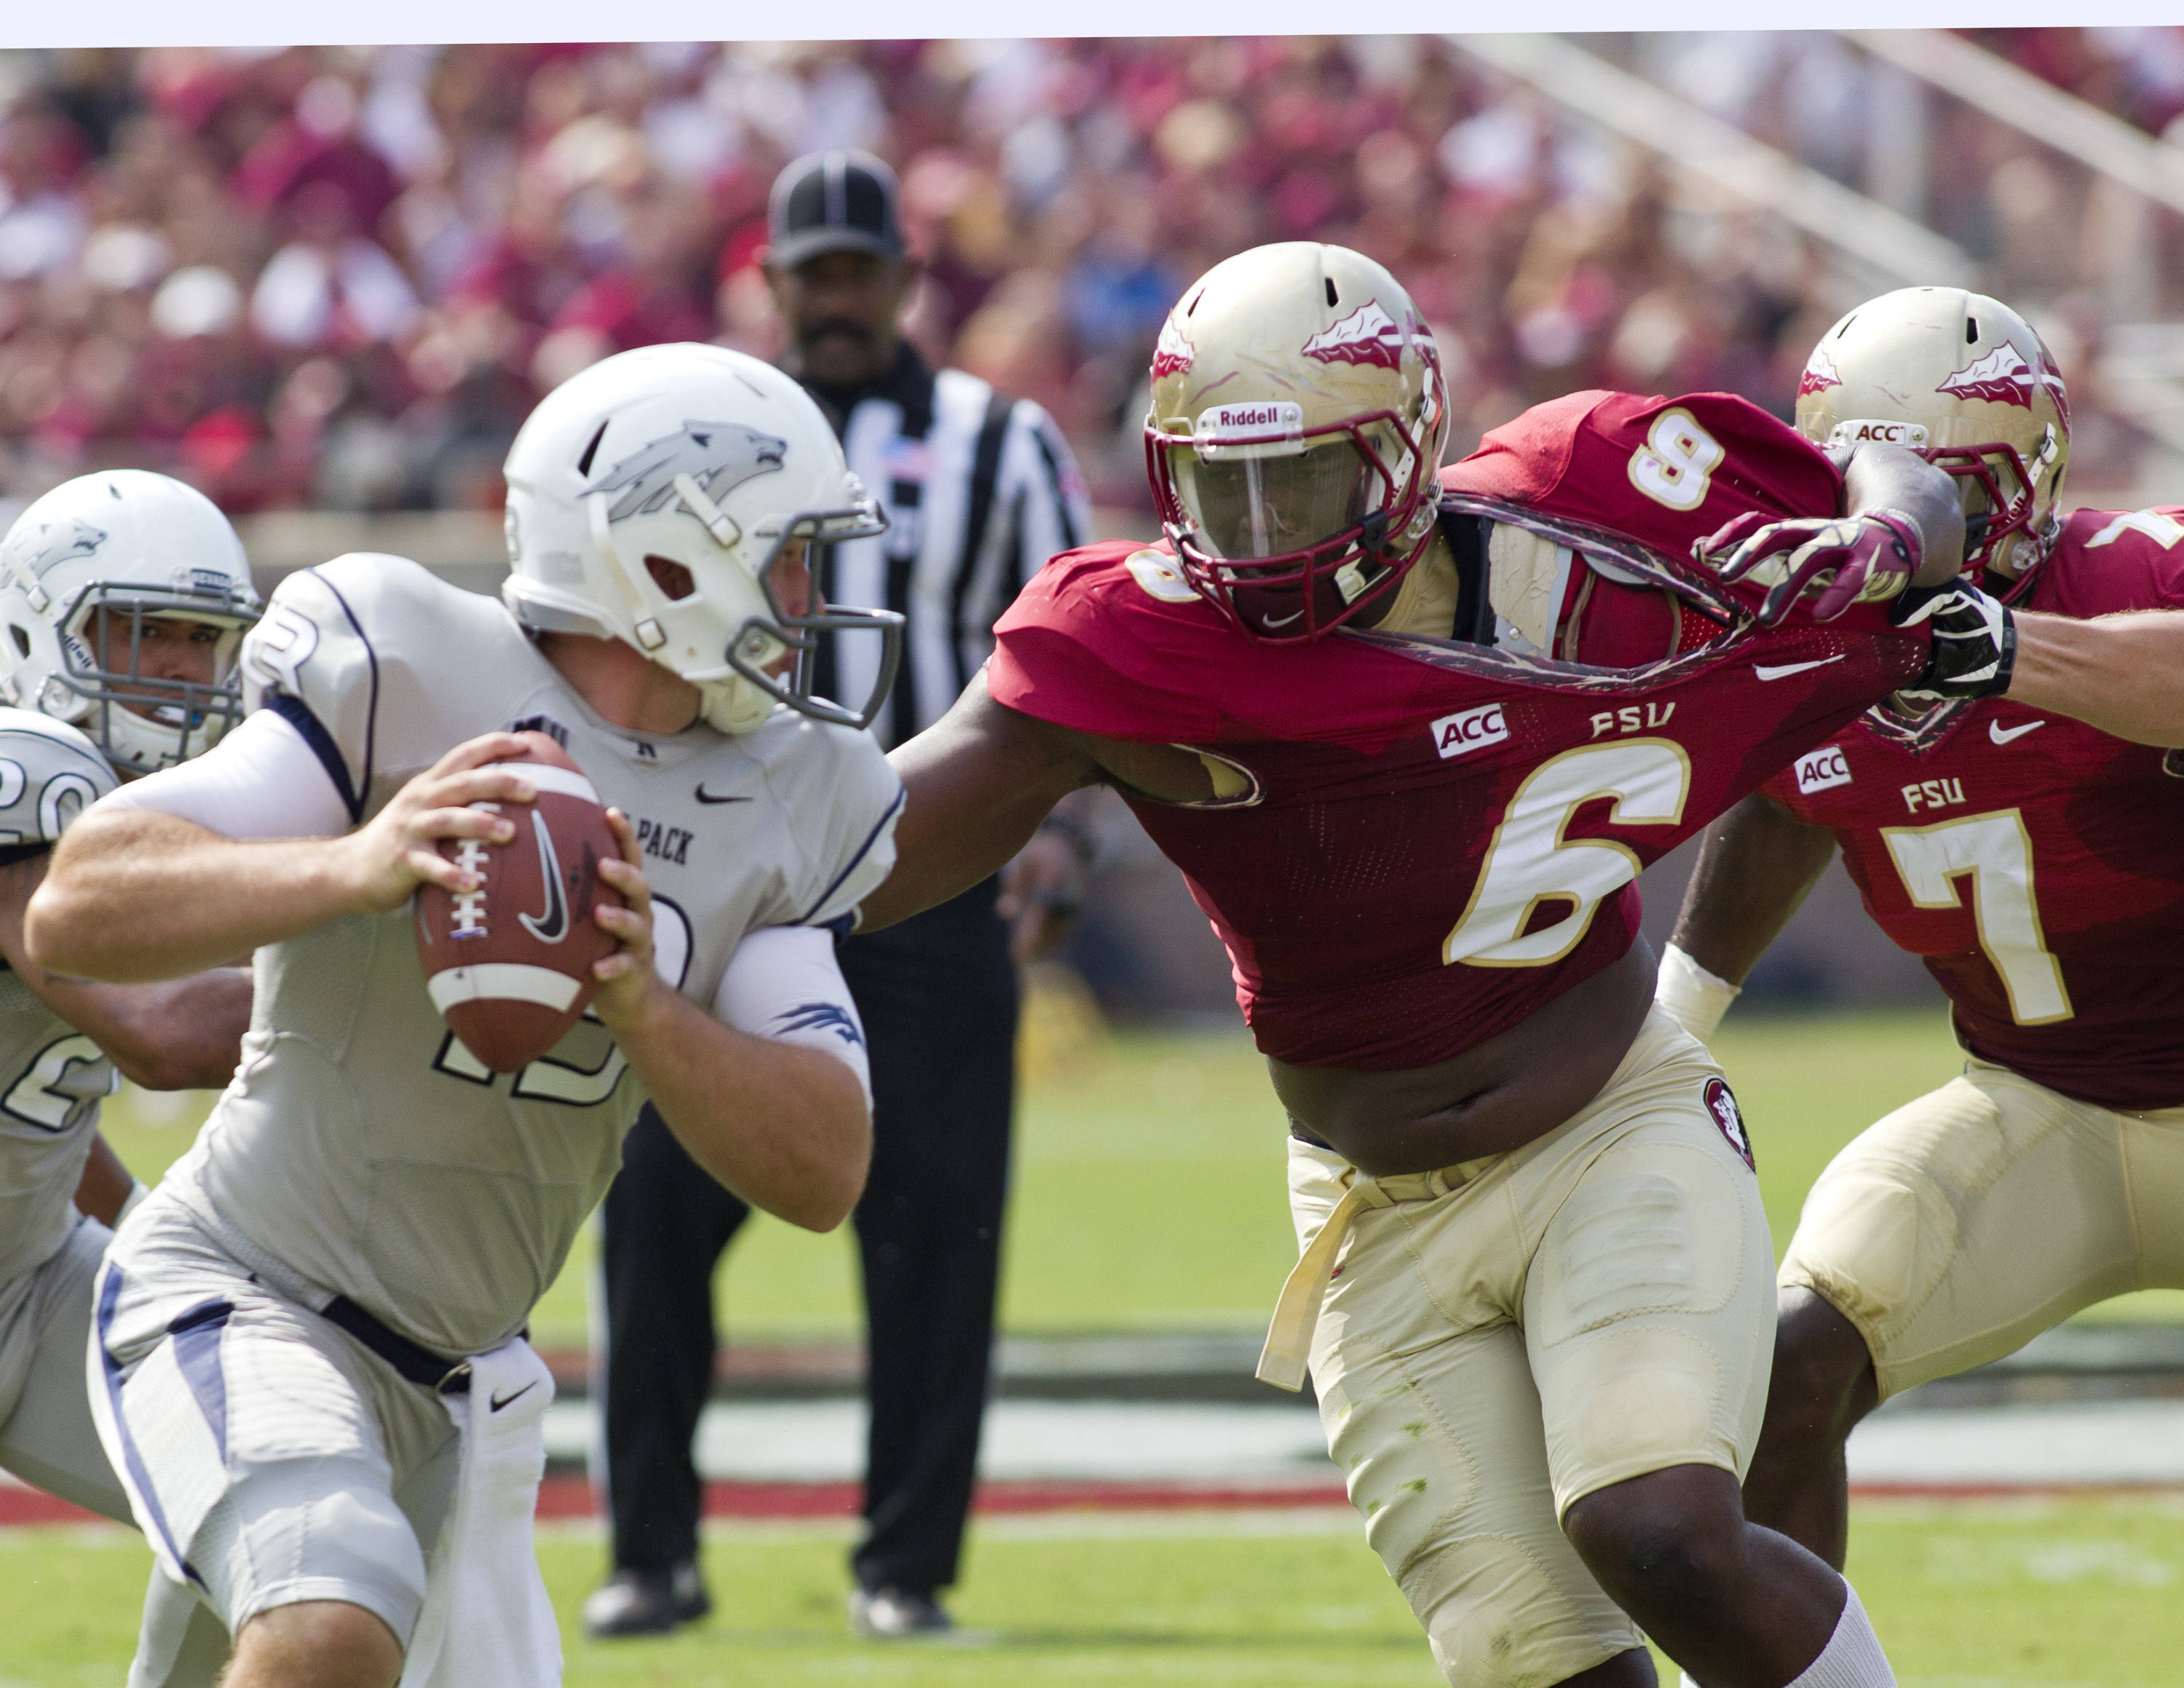 Dan Hicks (6), FSU vs Nevada,  9-14-13, (Photo by Steve Musco)